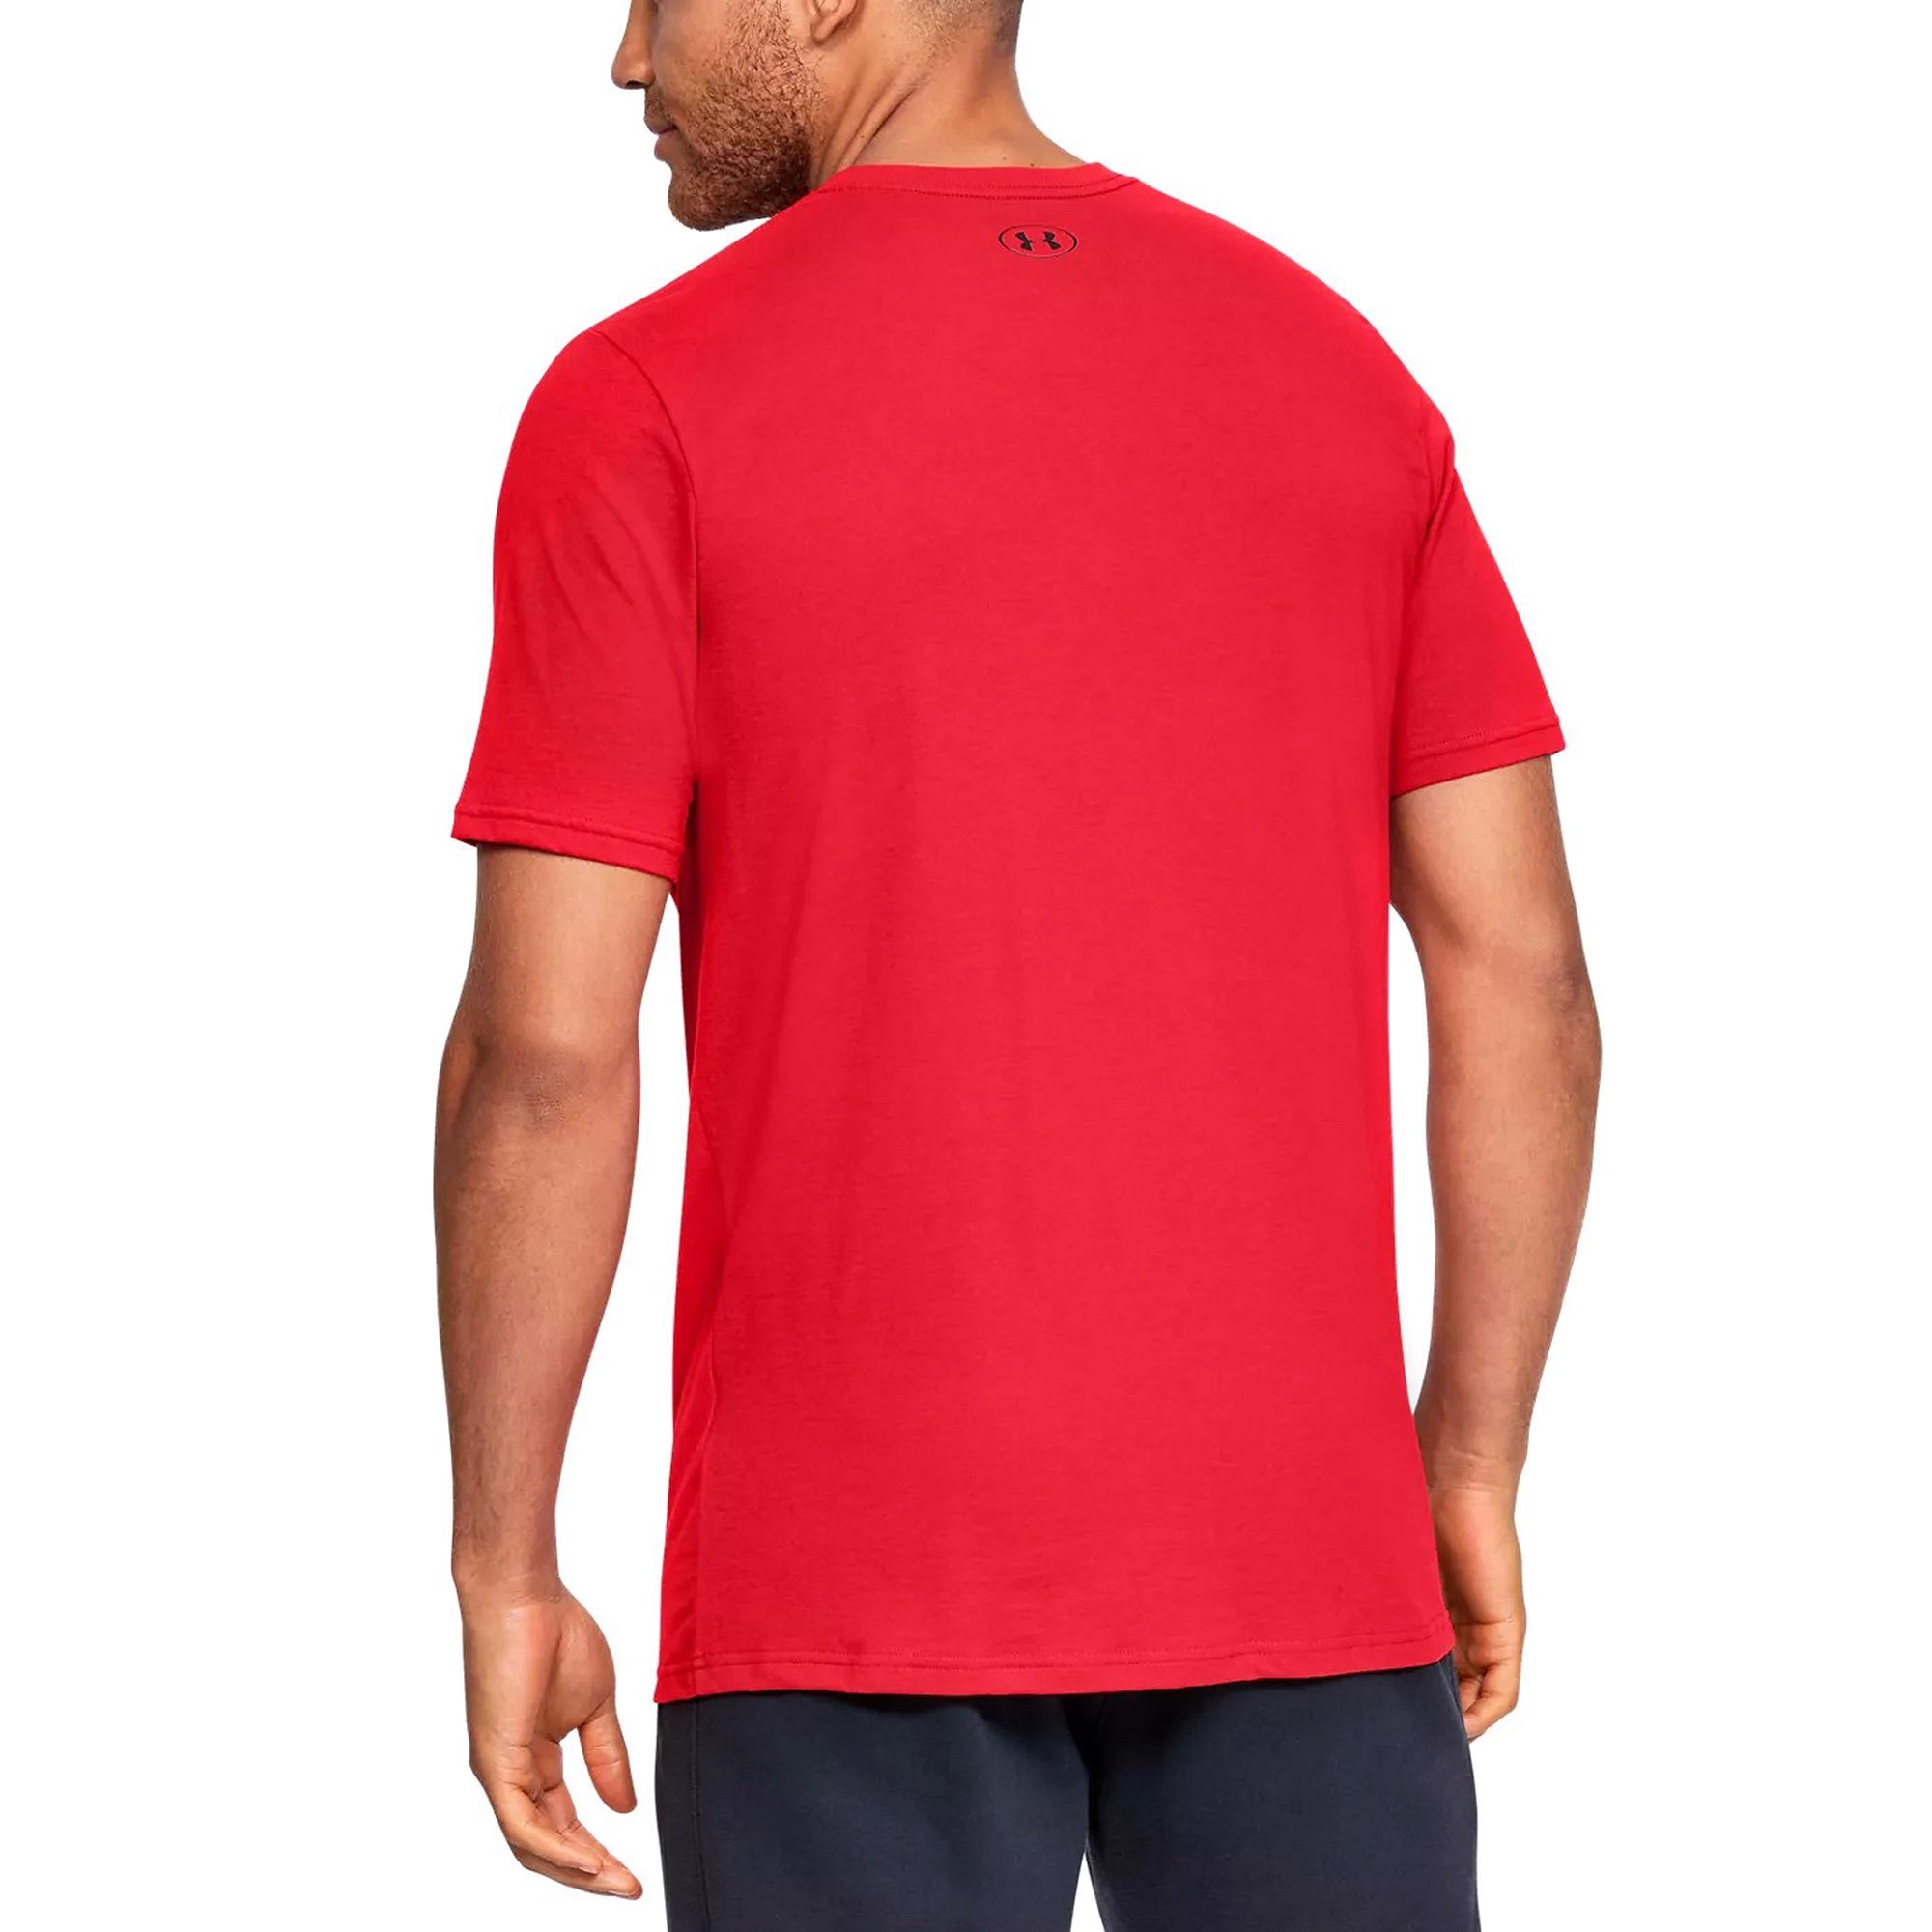 Under Armour - Áo thun nam Tee Foundation Top Training SS21-1326